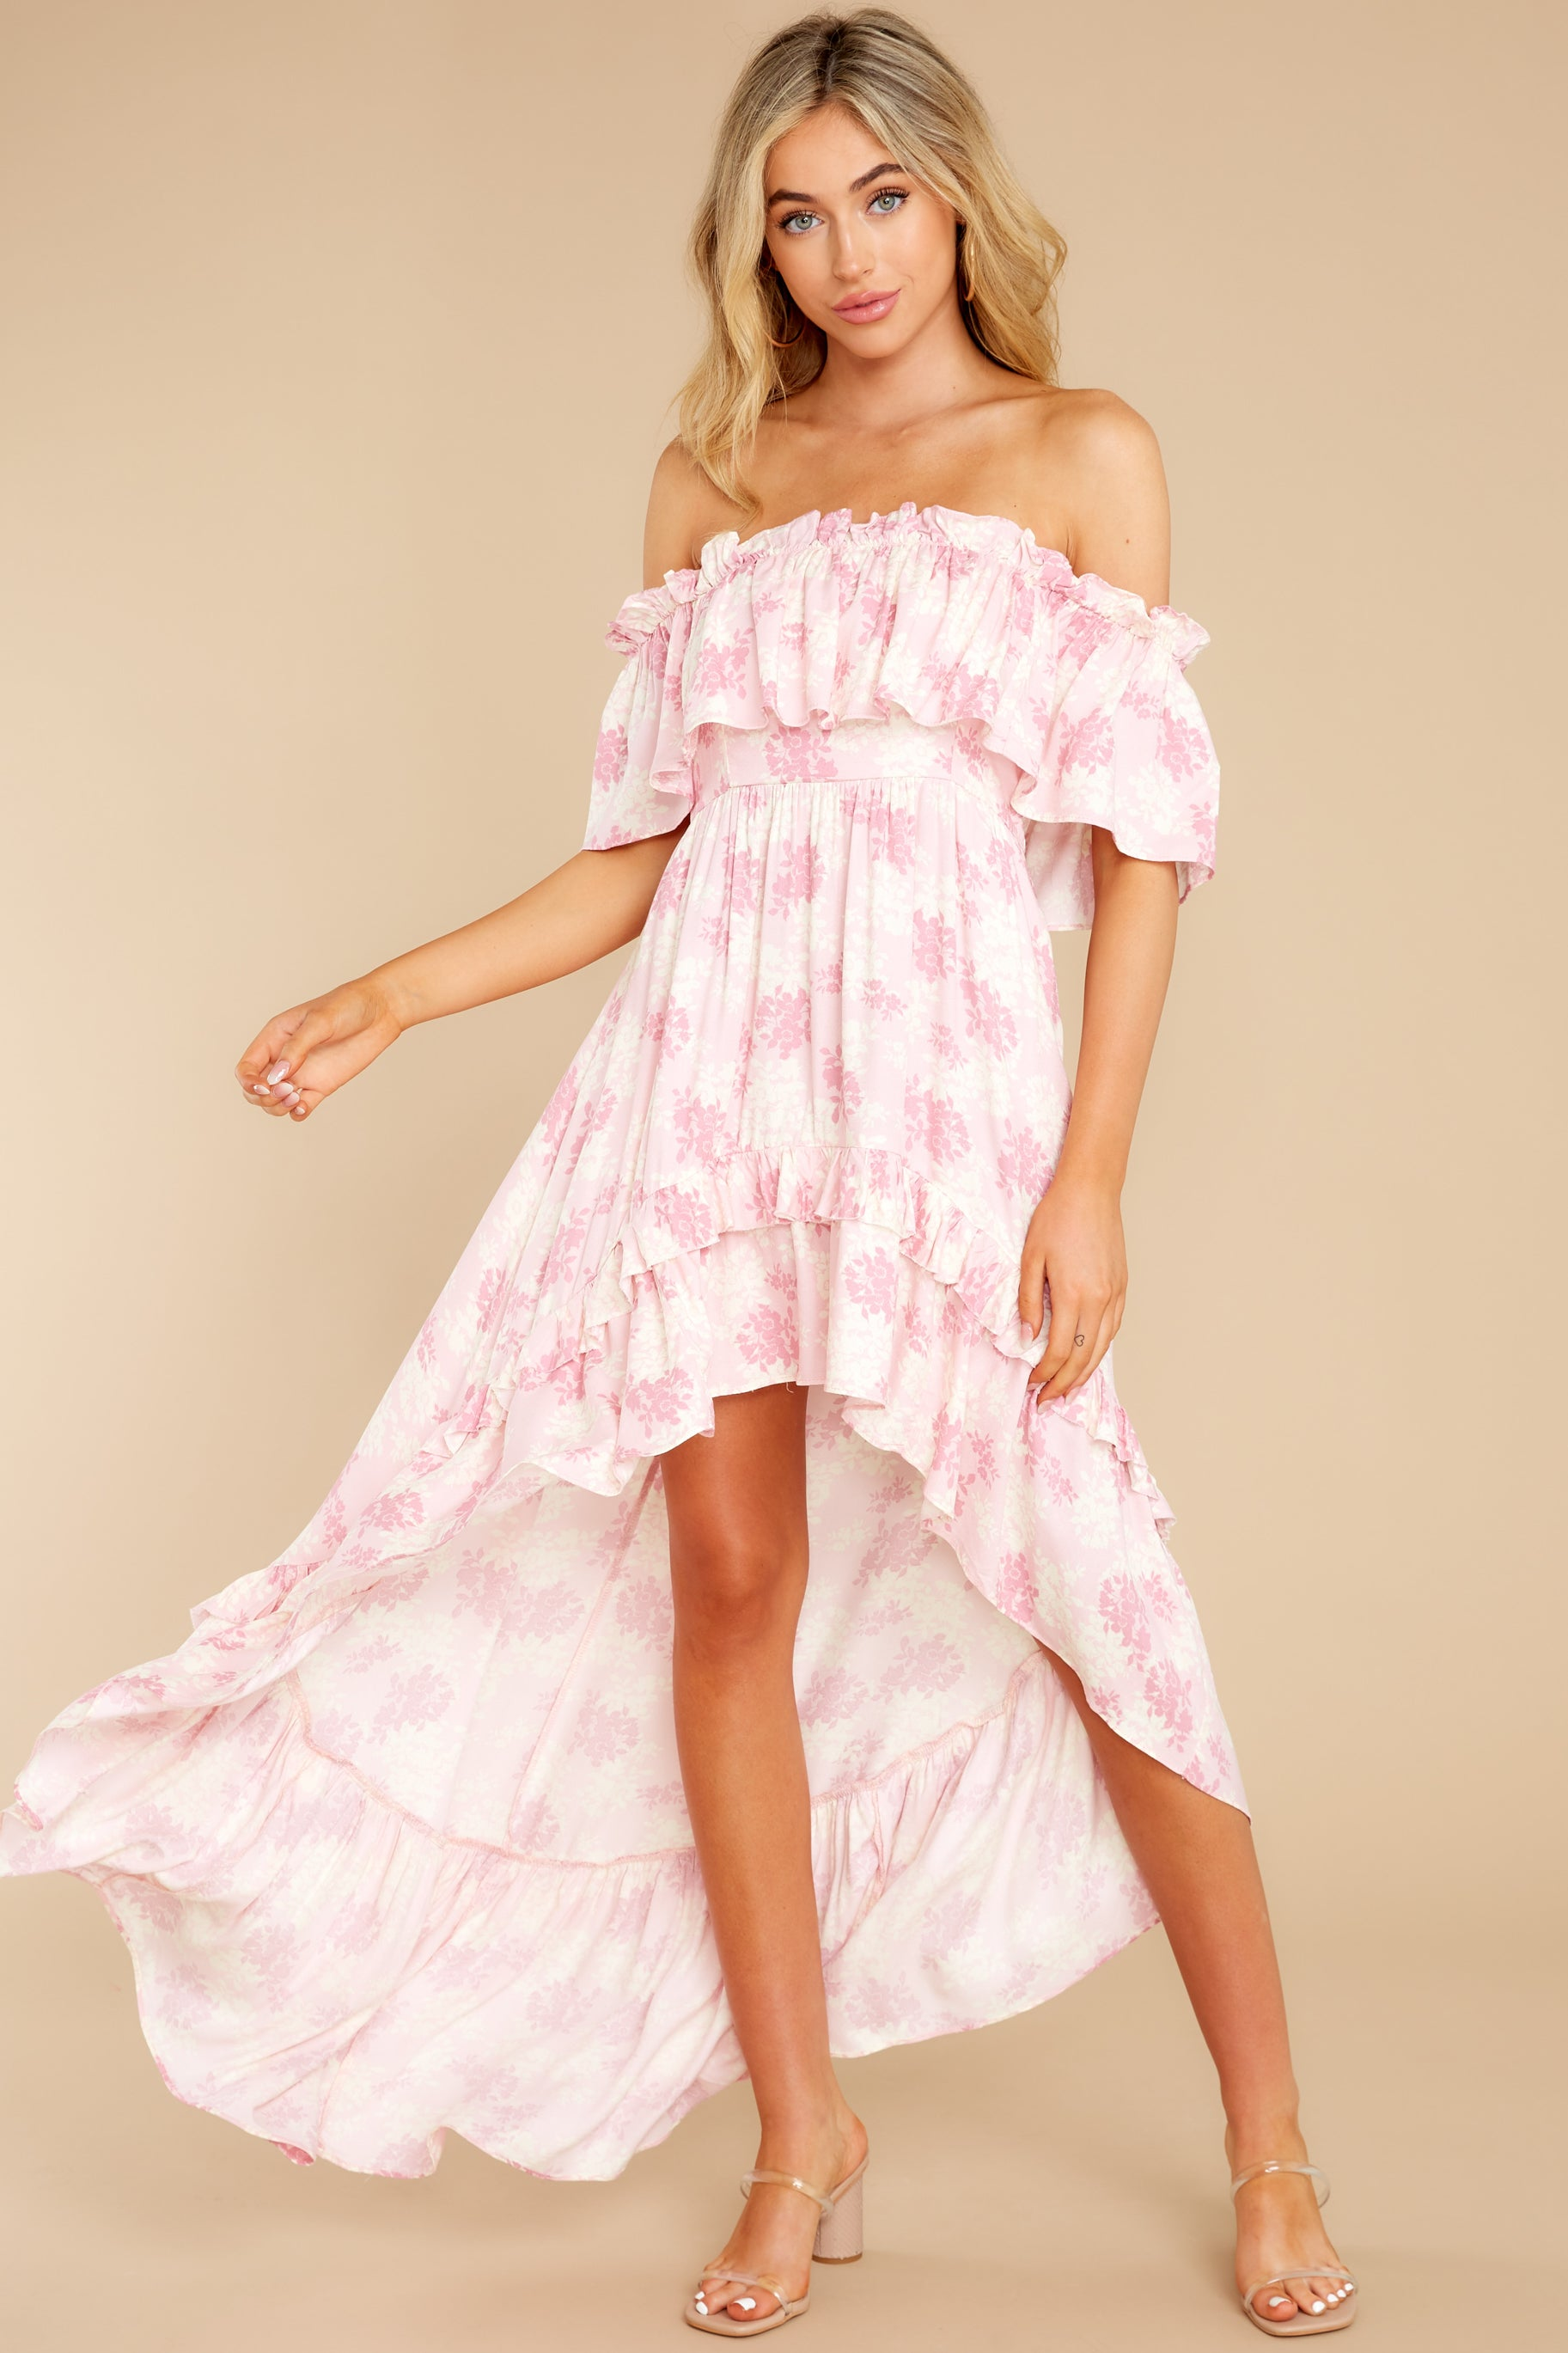 6 Instant Romance Pink Multi Print High-Low Dress at reddress.com